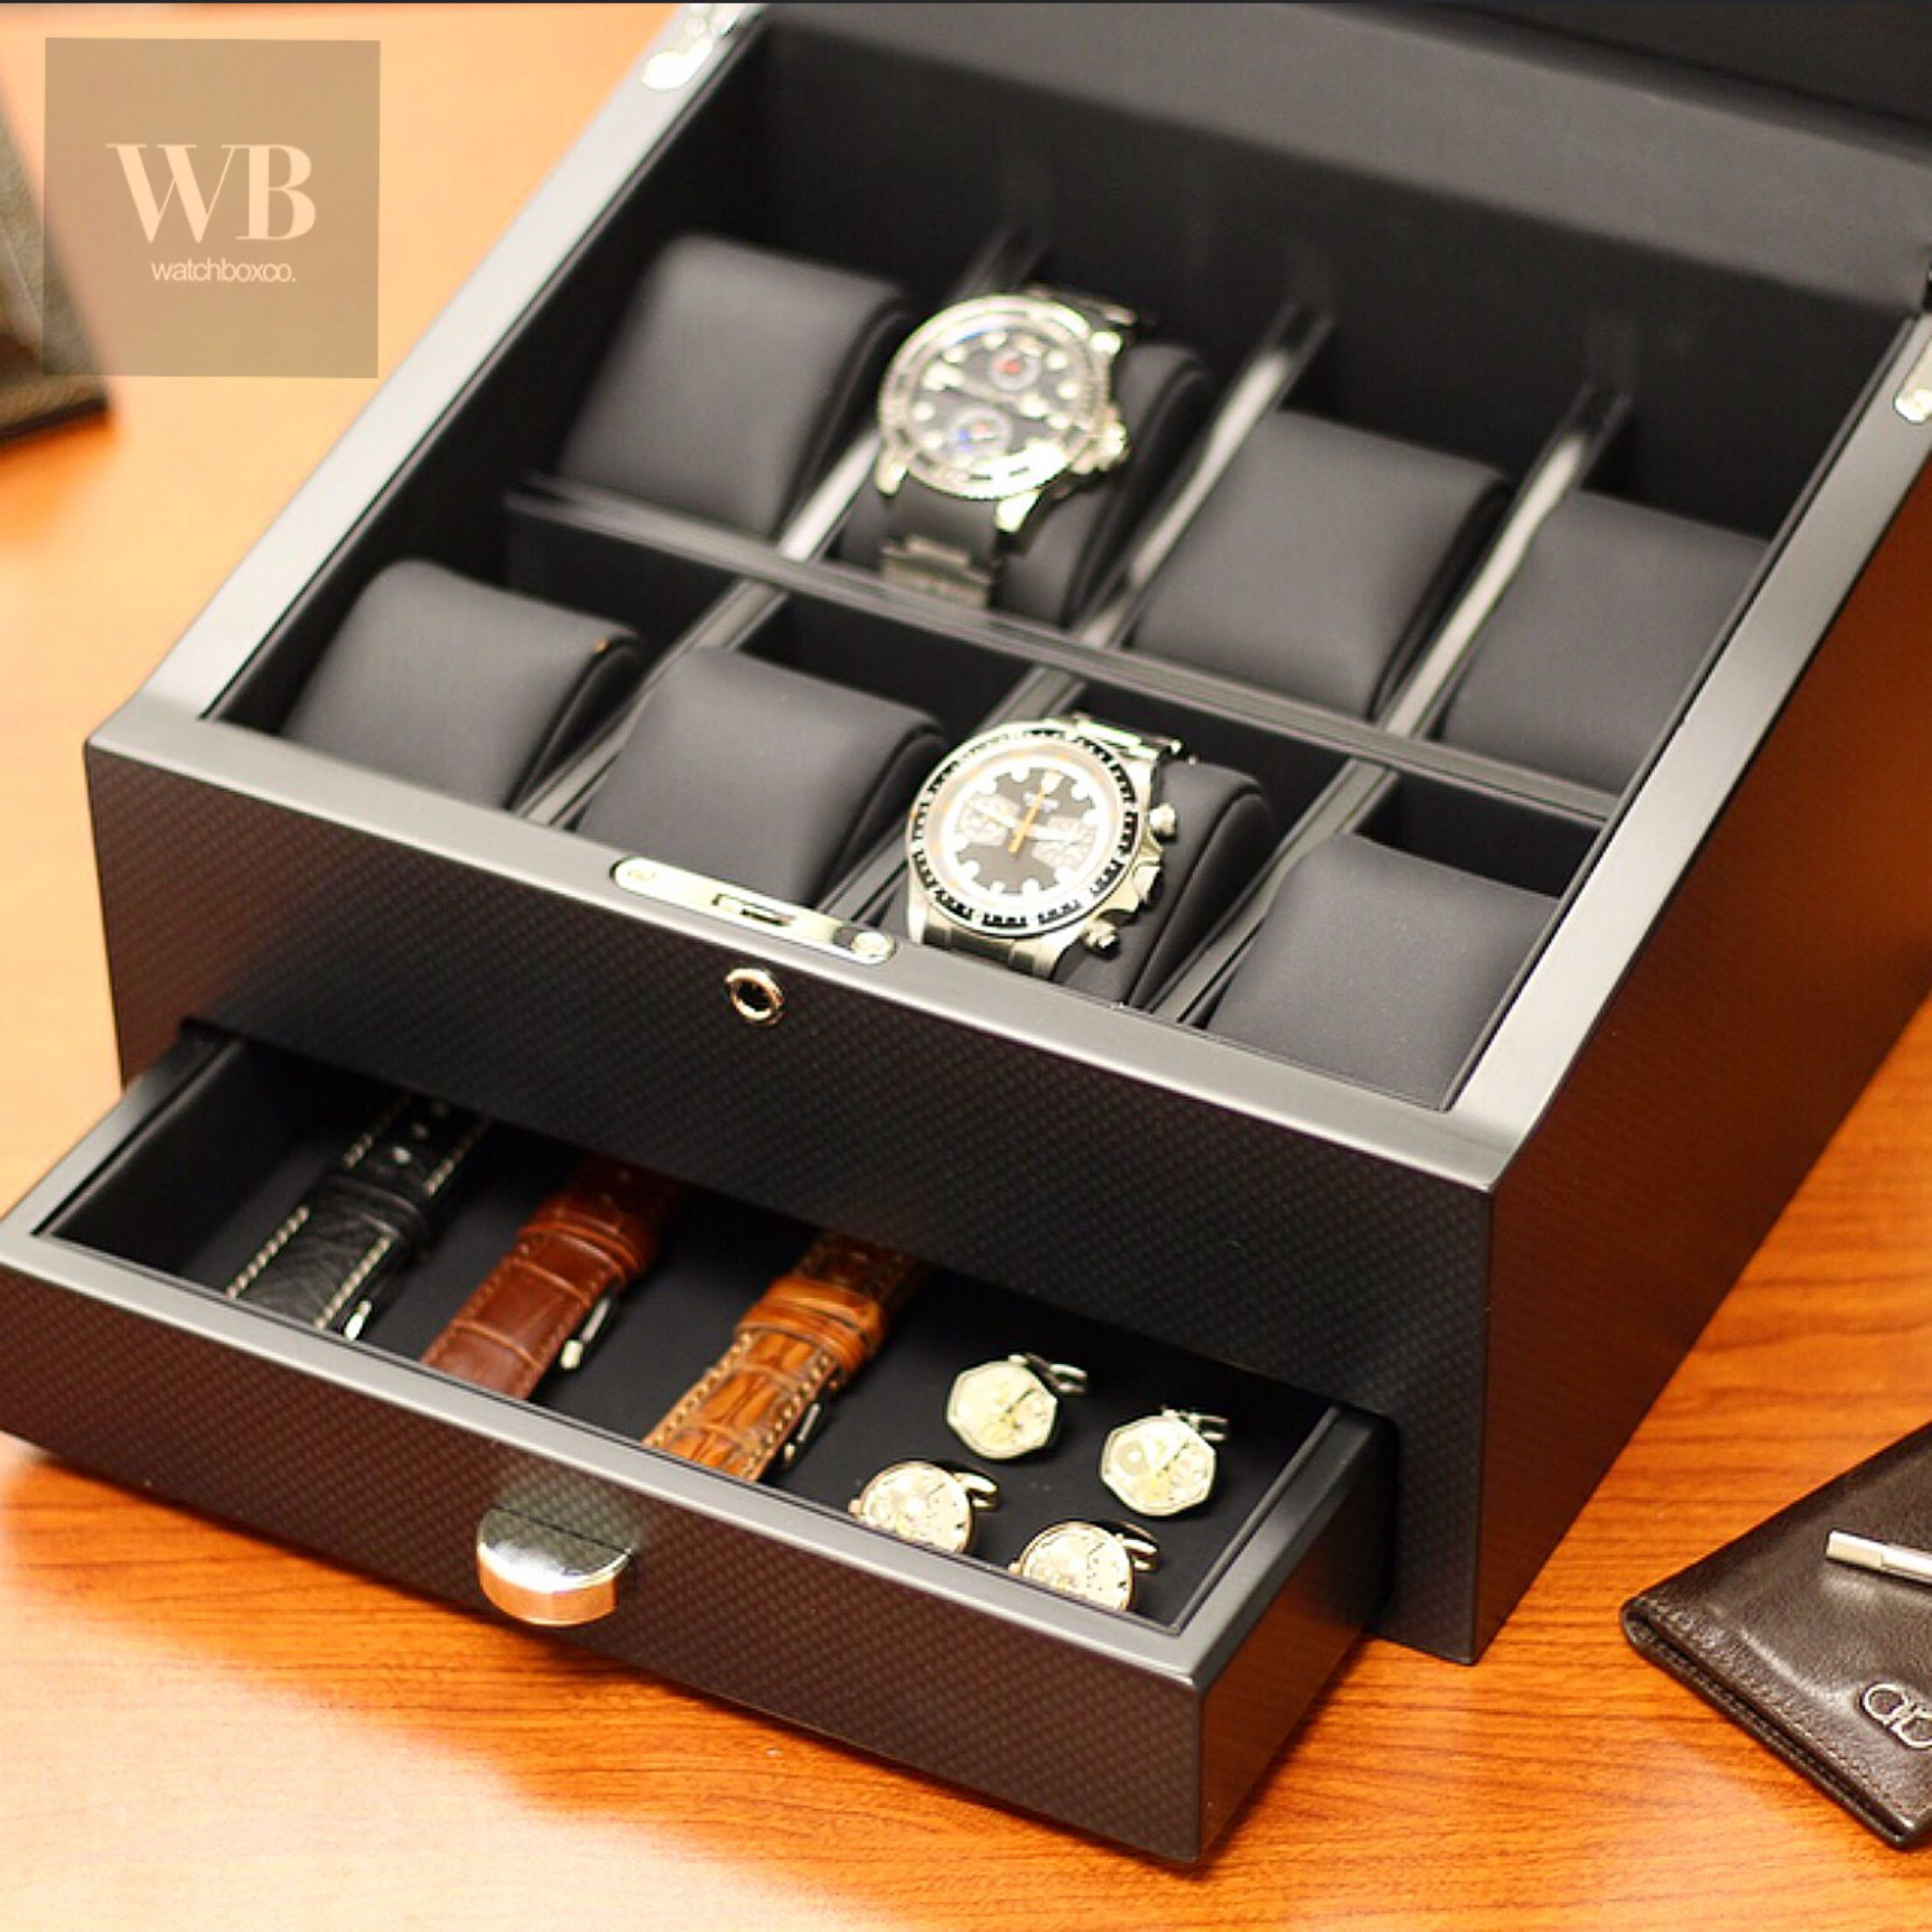 8 Carbon Fiber Watch Box With Storage Drawer Www Watchboxco Com Mens Watch Box Carbon Fiber Watch Box Watches For Men